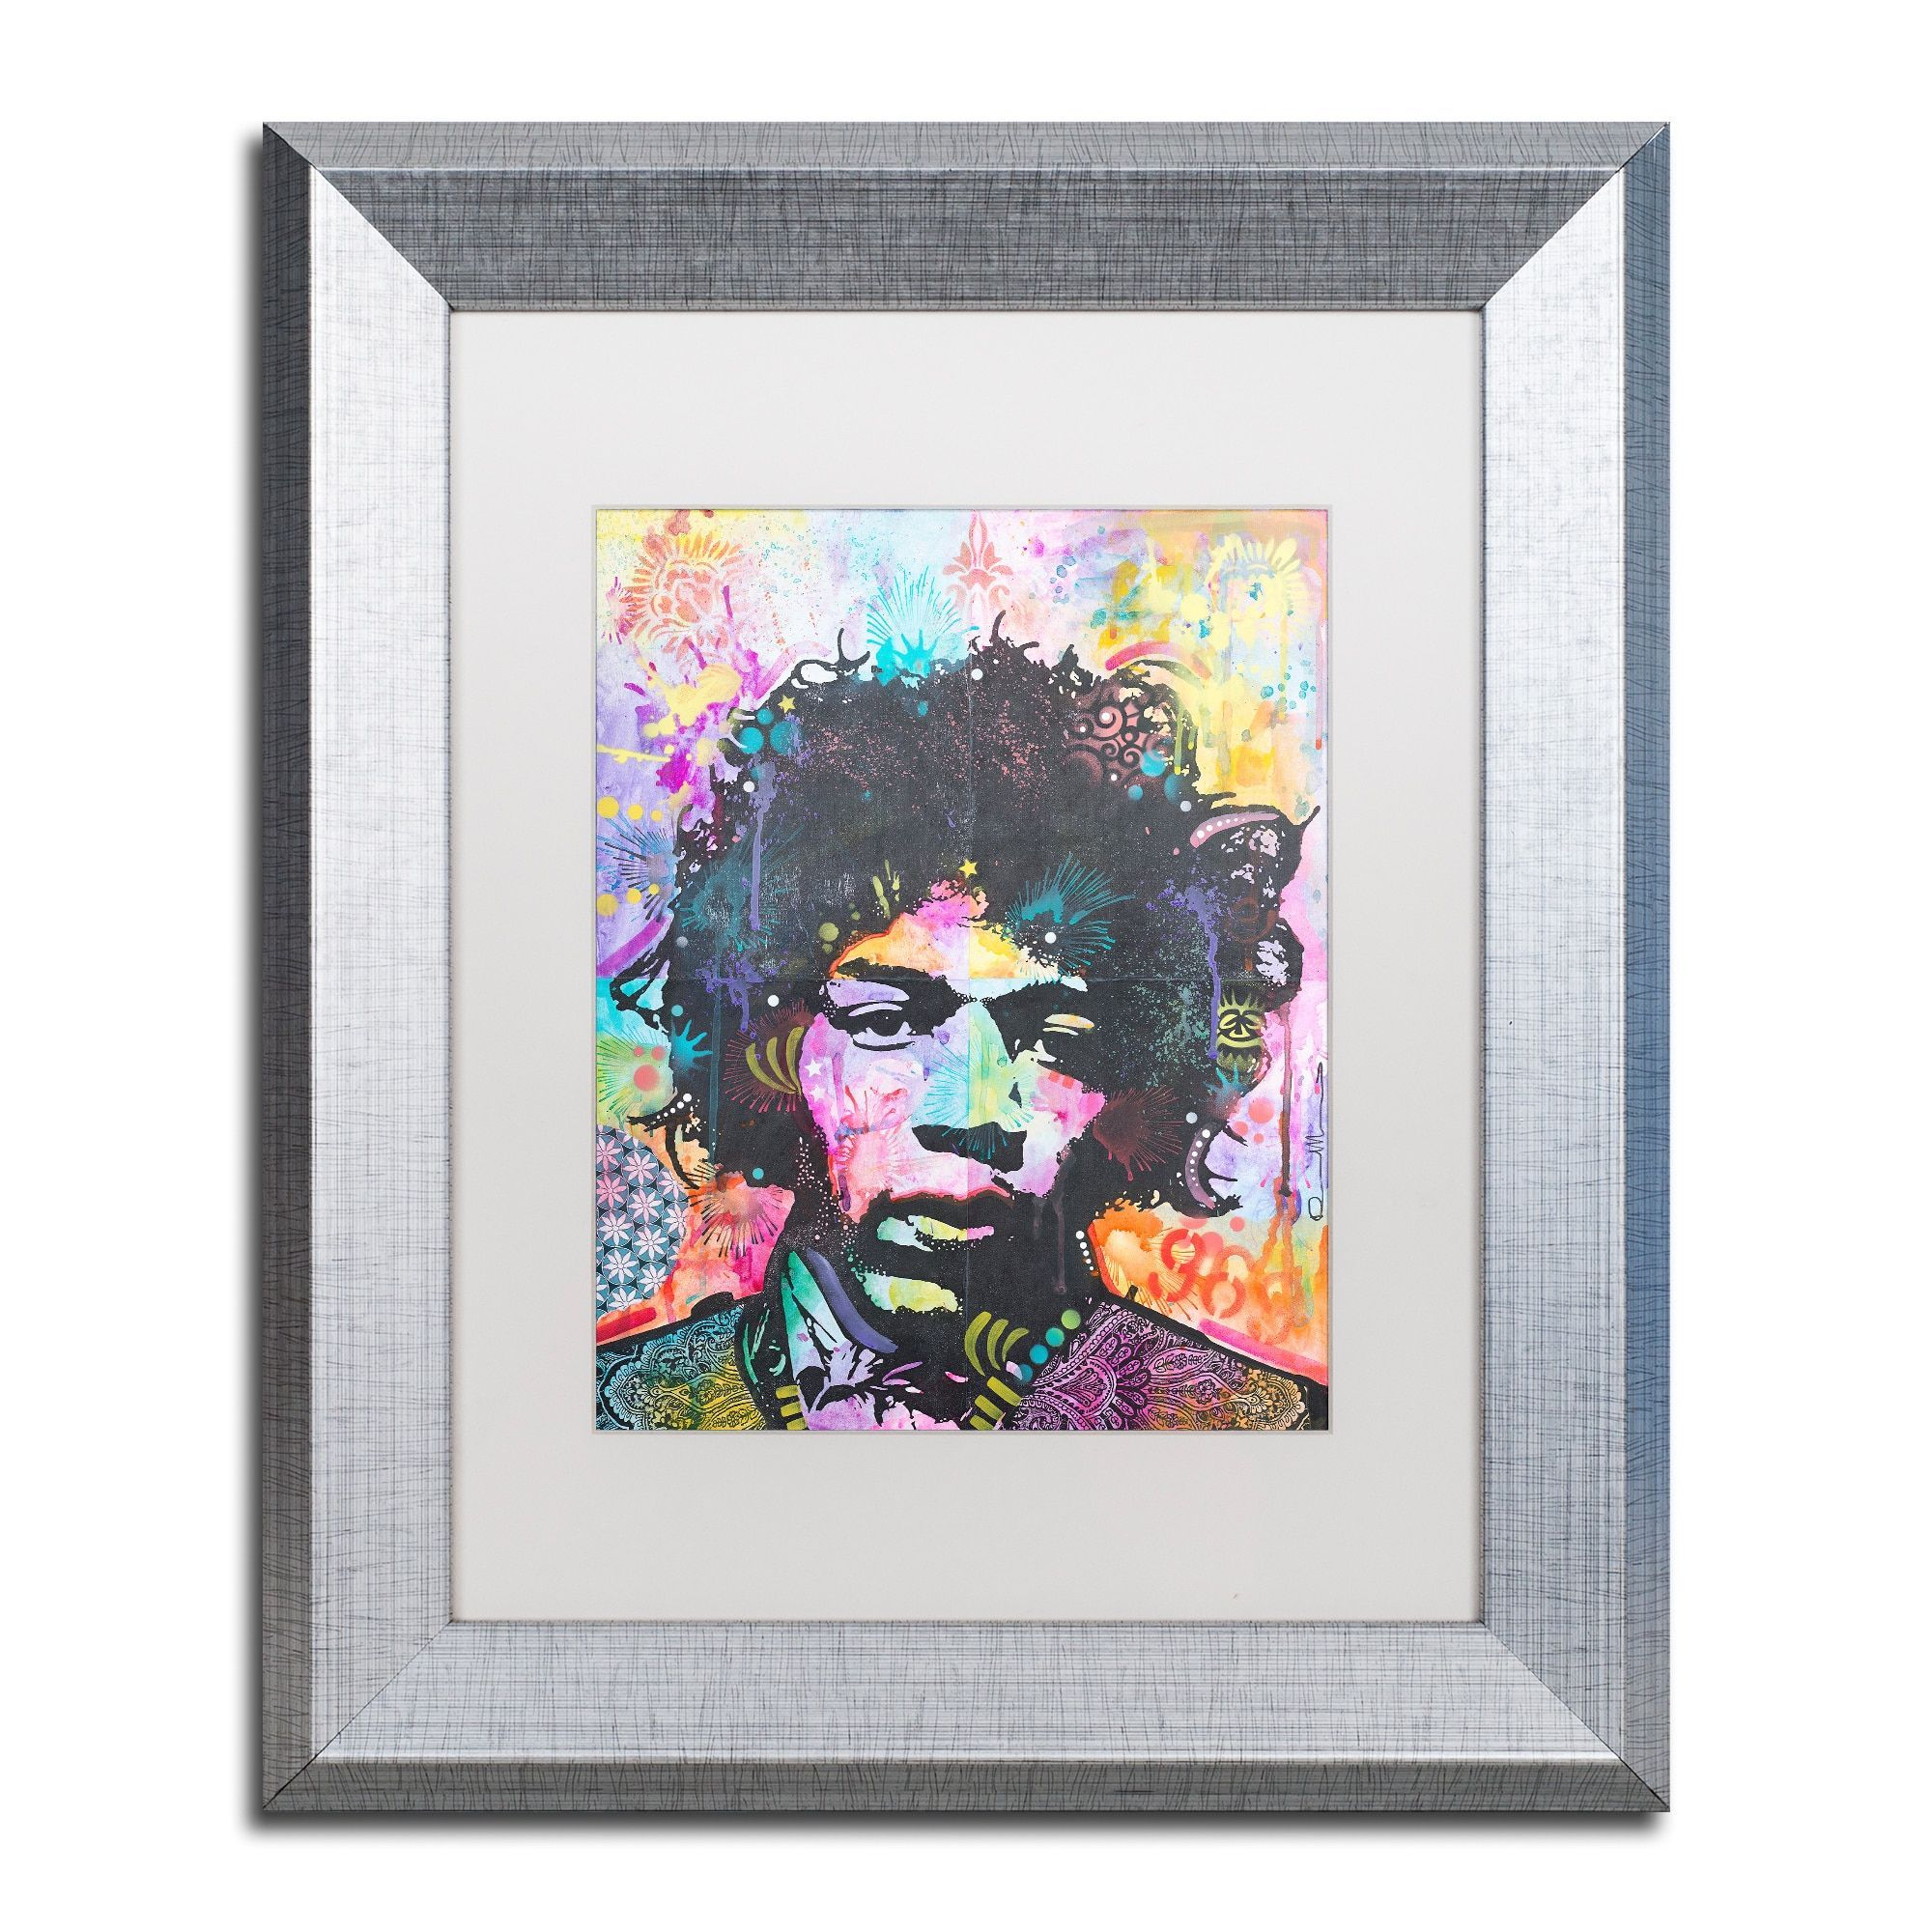 Dean Russo 'Hendrix 6 Was 9' Matted Framed Art